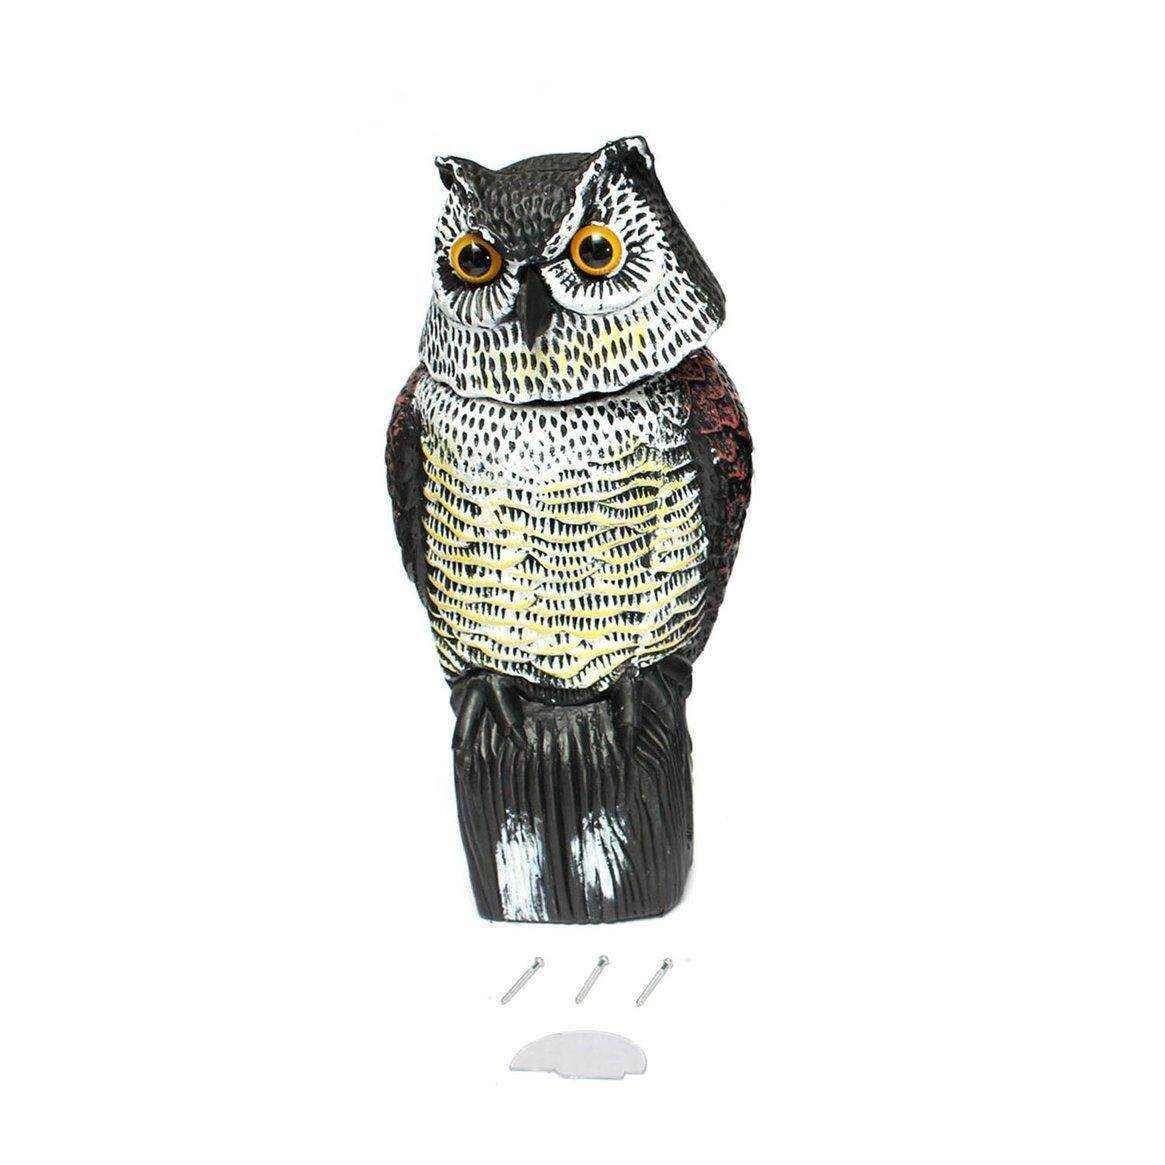 DOIT Rotating Head Owl Decoy Garden Protection Repellent Bird Pest Scarer Scarecrow